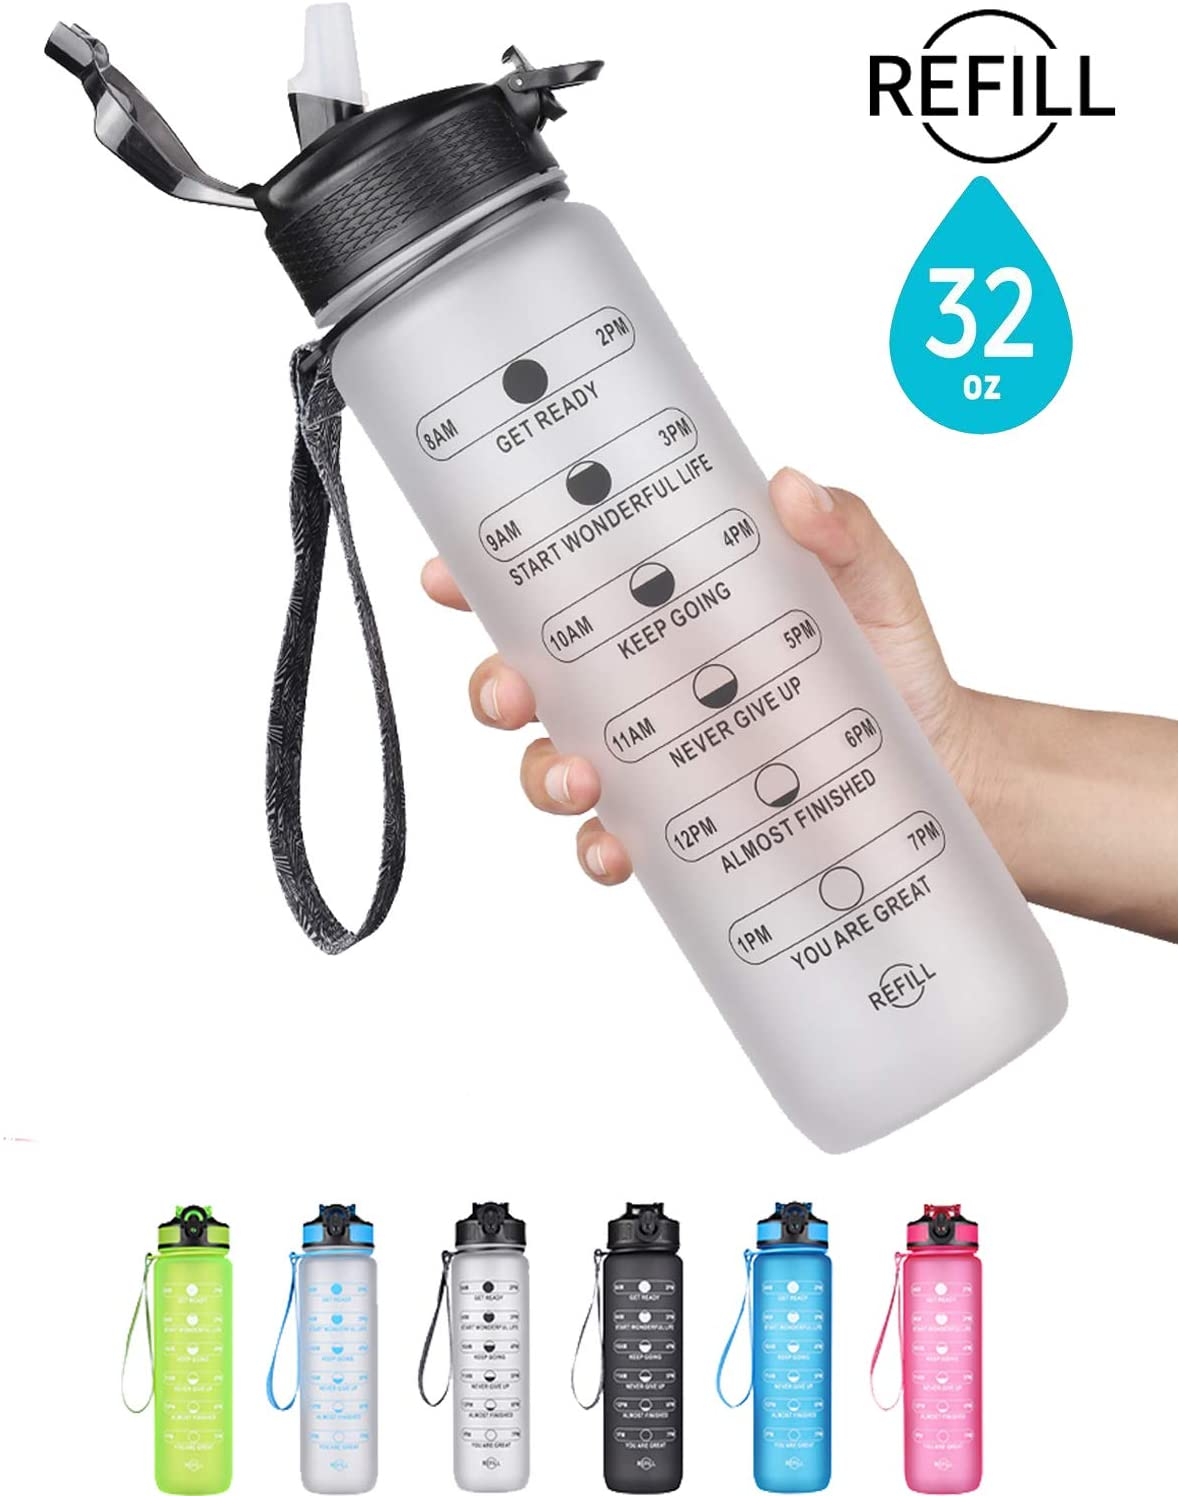 SLUXKE 32oz / 1 Liter Motivational Sports Water Bottle with Time Marker & Silicone Straw,BPA Free,Non-Toxic,Durable, 1 Click Open for Fitness,Gym and Outdoor Sports